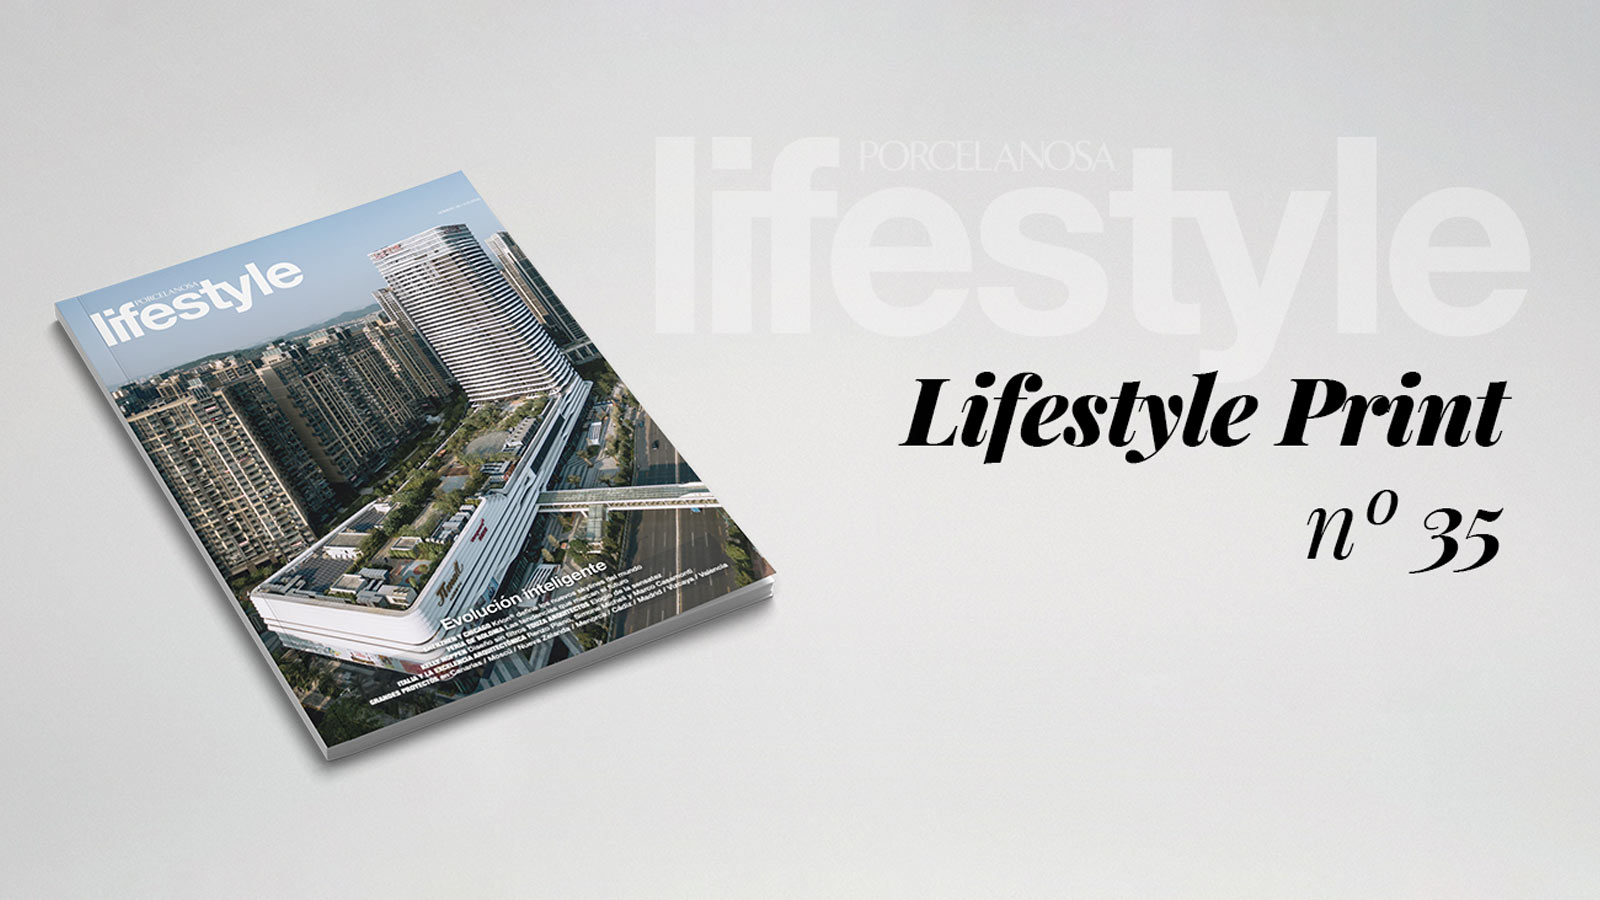 Lifestyle magazine devotes its pages to sustainable design and the architecture of the future